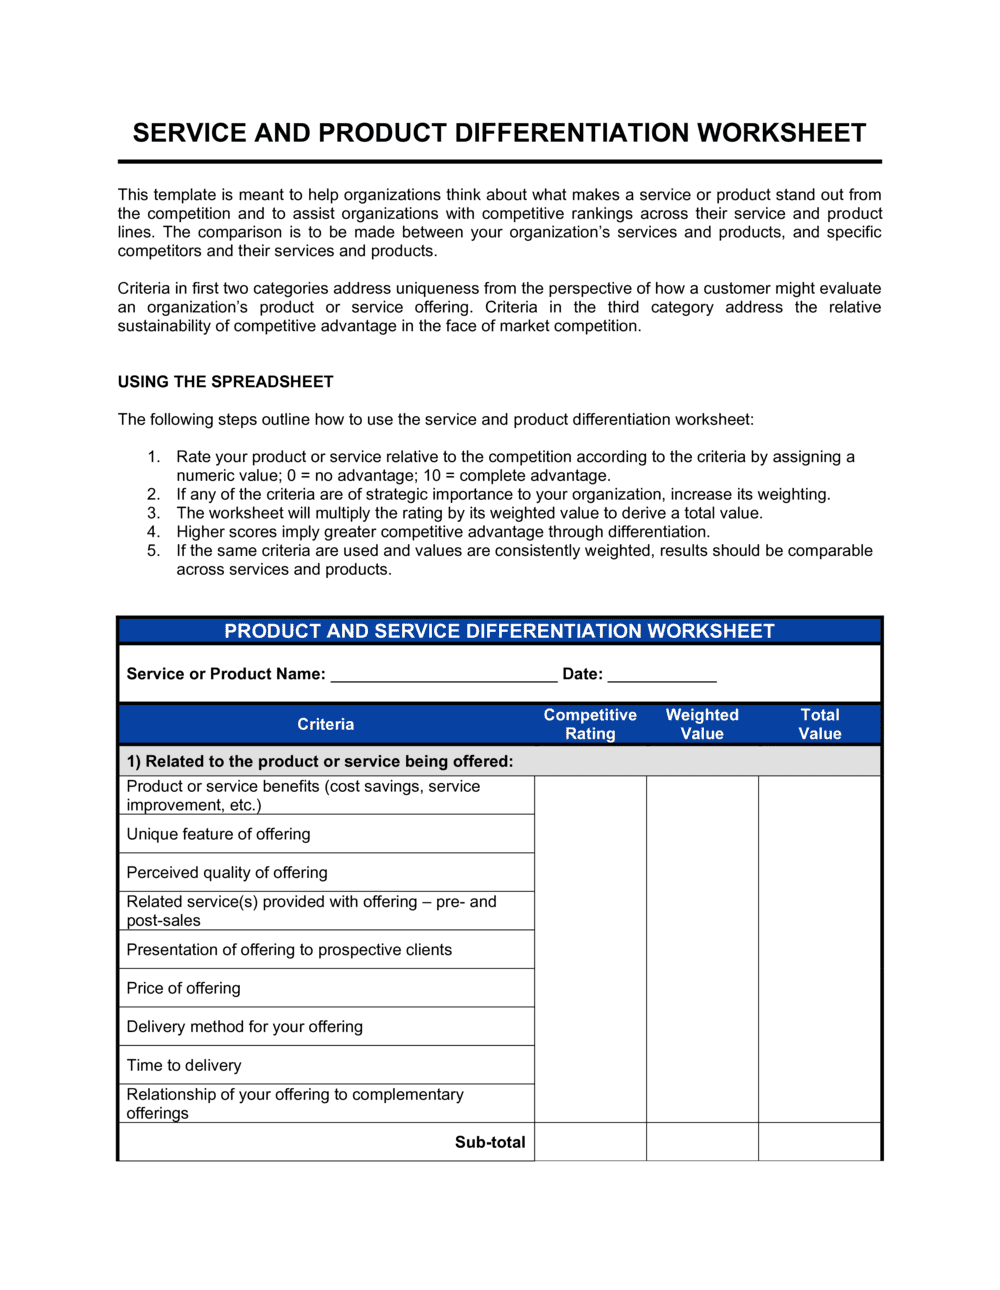 Business-in-a-Box's Worksheet Products and Services Differentiation Template